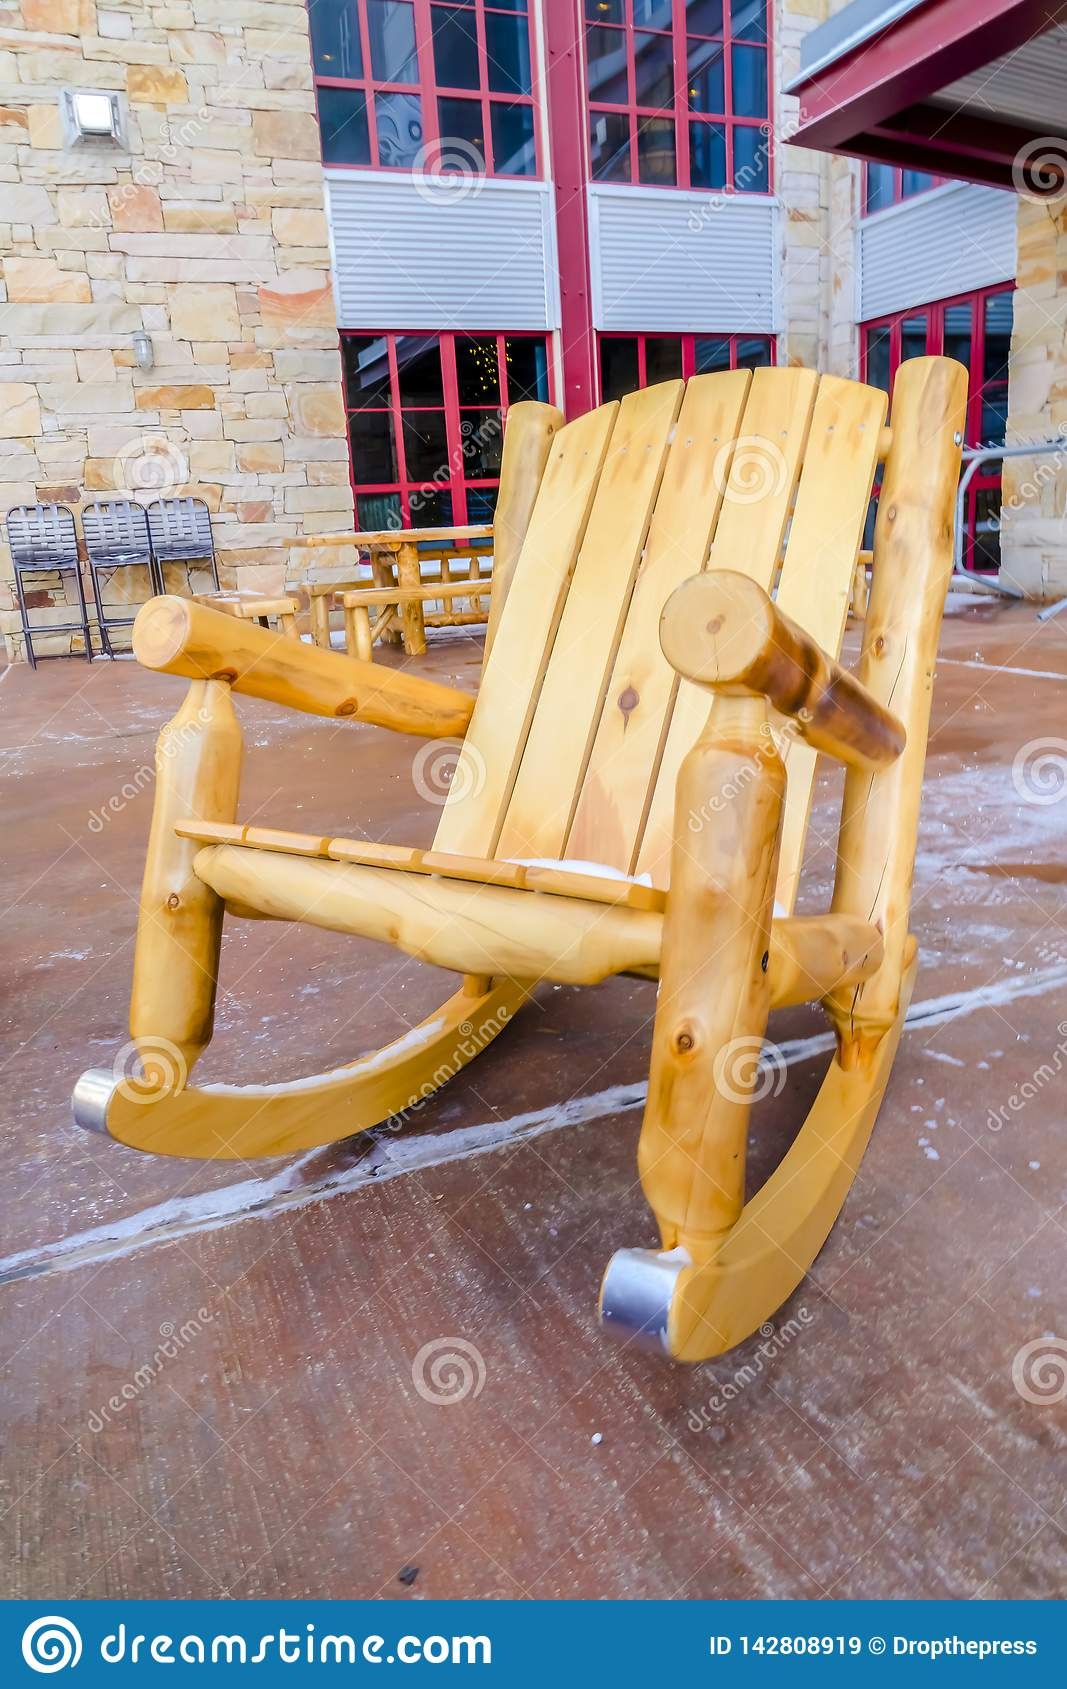 Astounding Wooden Rocking Chair On The Patio Of A Building Stock Image Bralicious Painted Fabric Chair Ideas Braliciousco